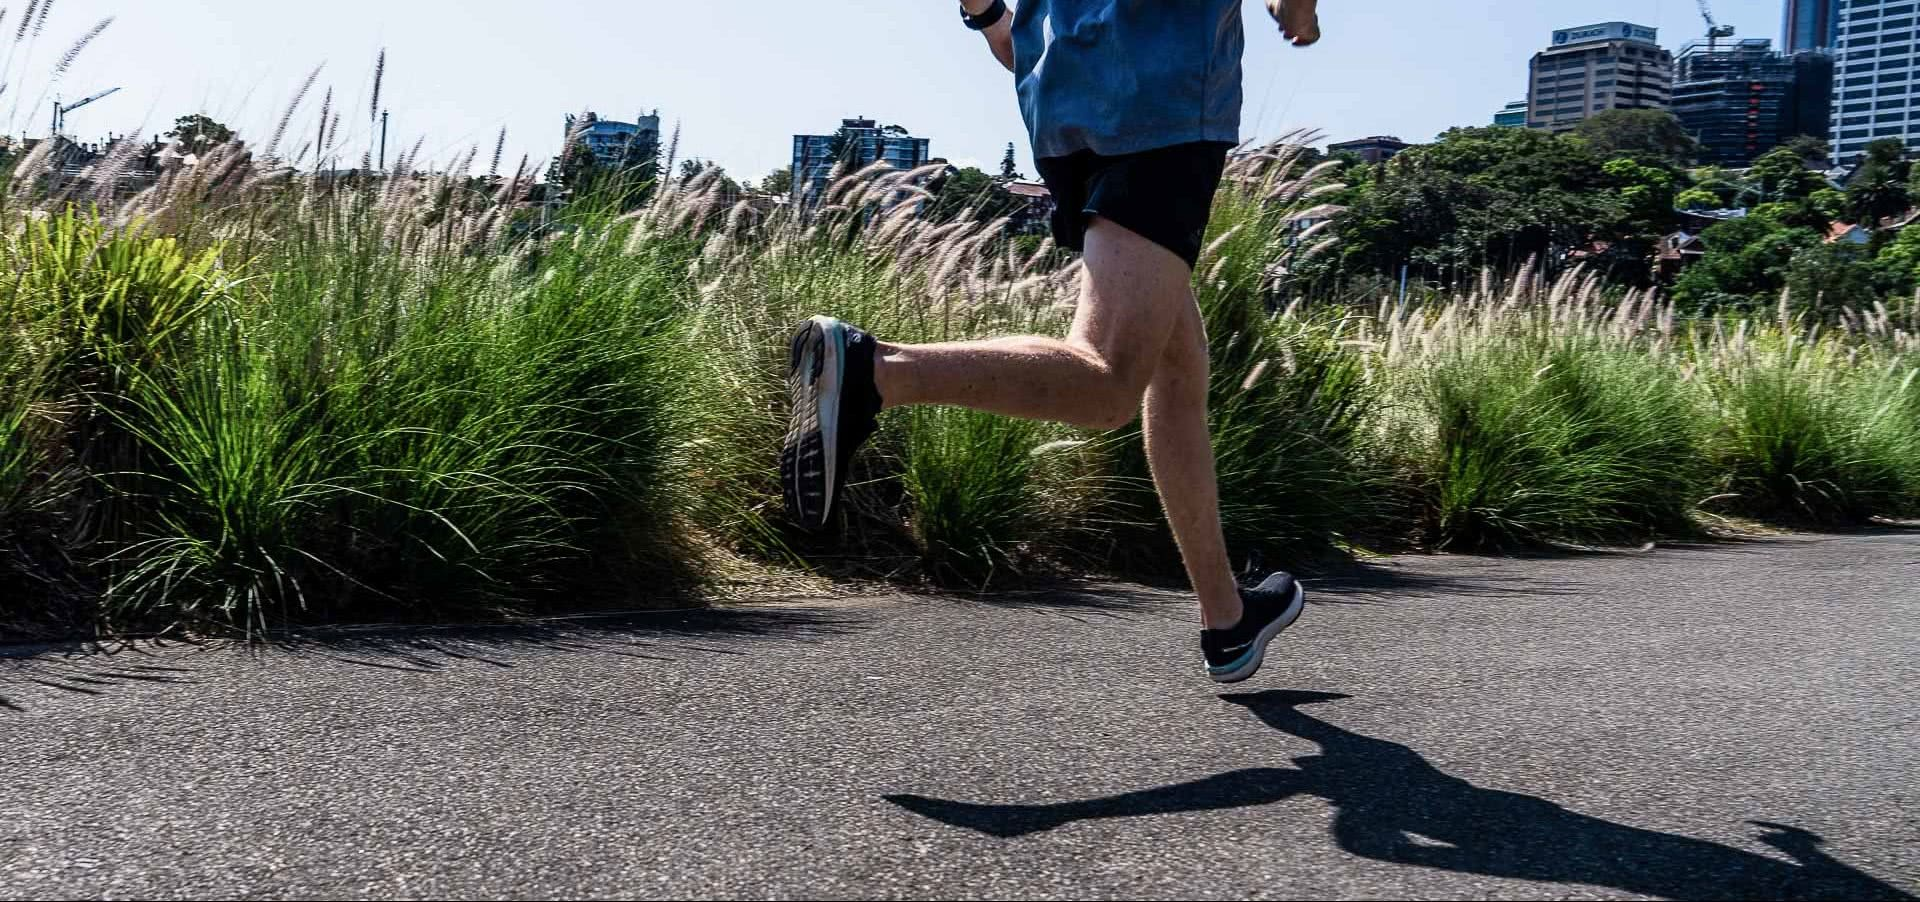 Salomon Sonic 3 Accelerate Gear Review, photo by Jono Tan @thetantrap, review by Tim Ashelford, lavender bay, sydney, nsw, running